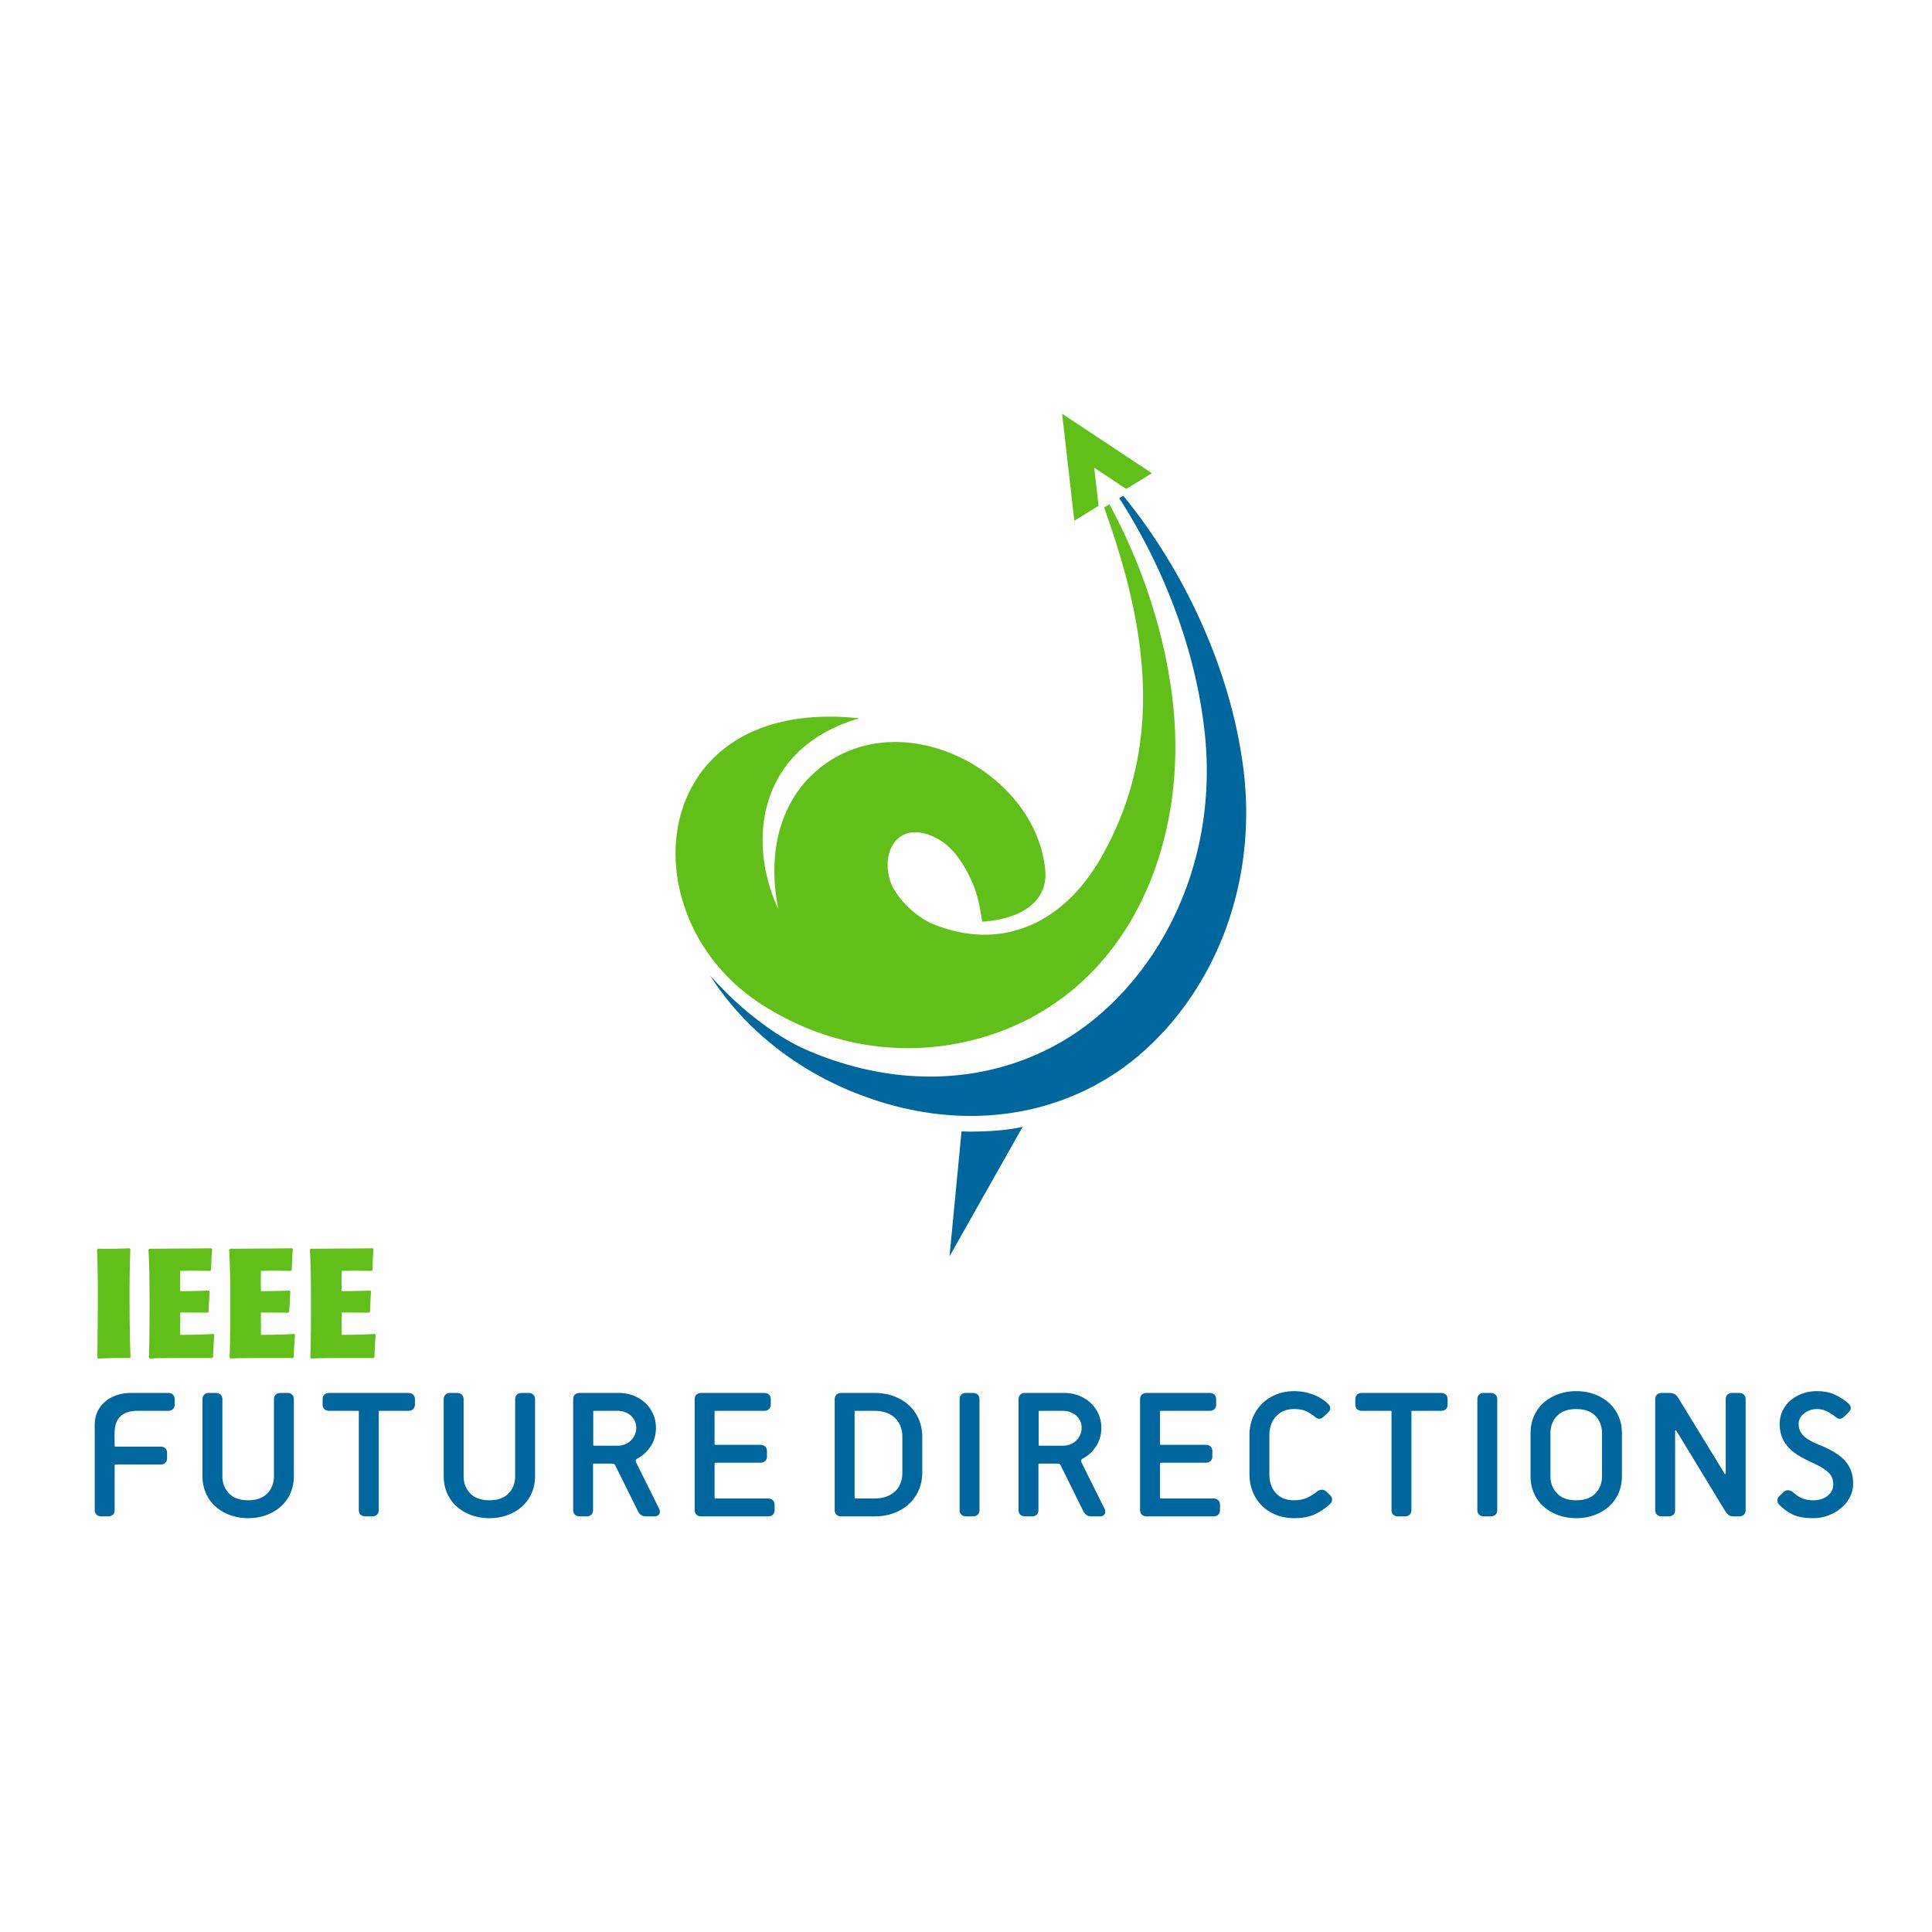 IEEE Future Directions logo